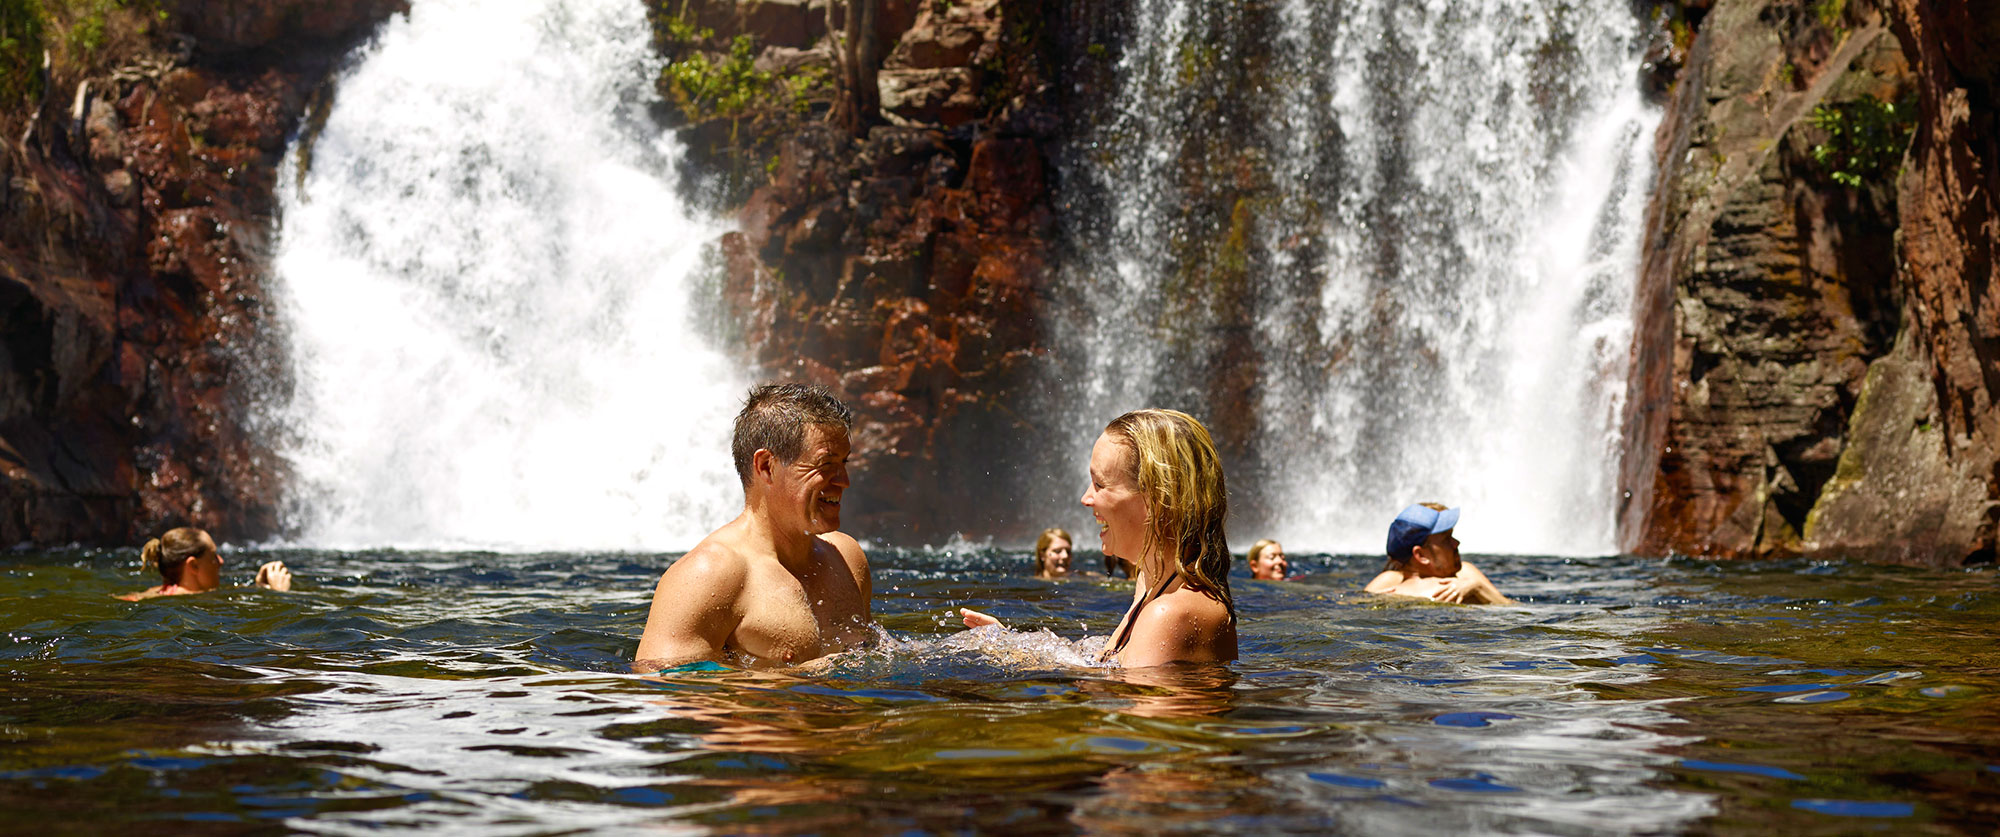 Outback Vacation - Litchfield National Park